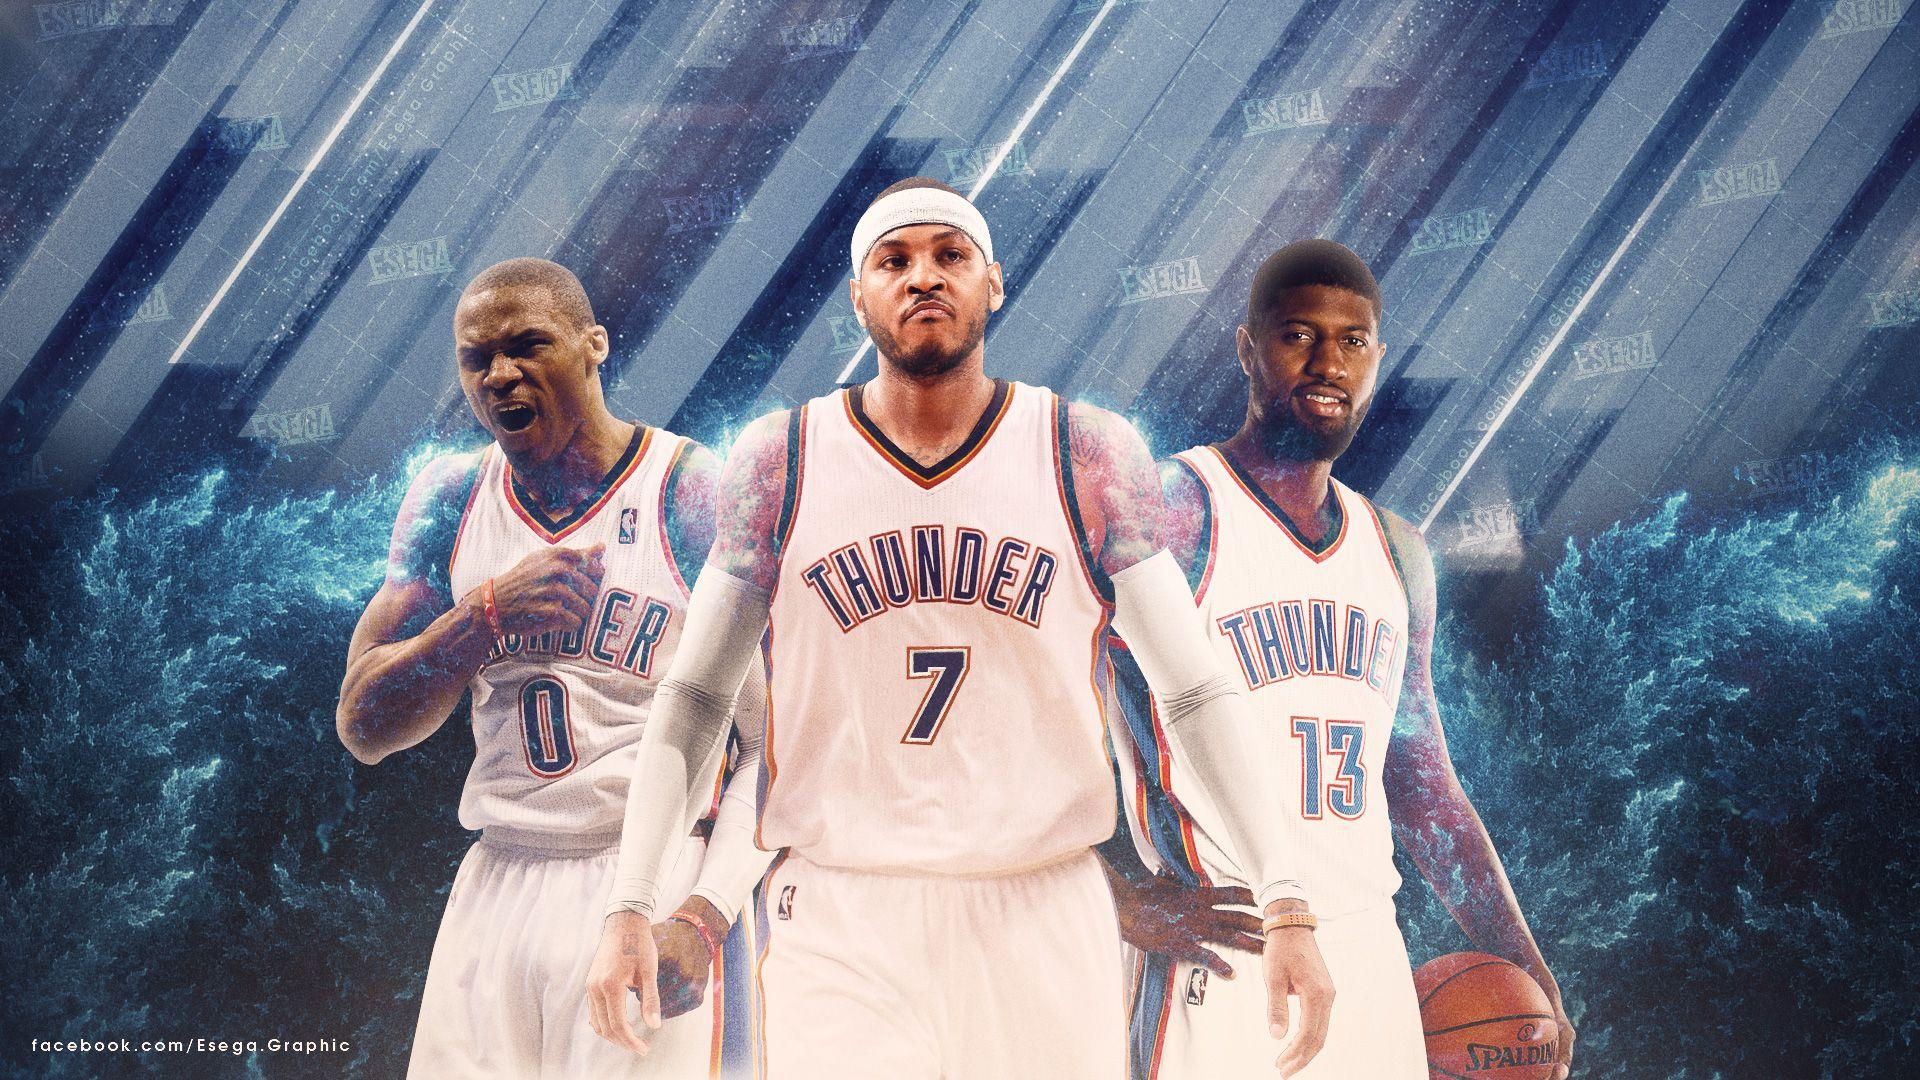 Paul George Oklahoma City Thunder Wallpapers Wallpaper Cave HD Wallpapers Download Free Images Wallpaper [1000image.com]